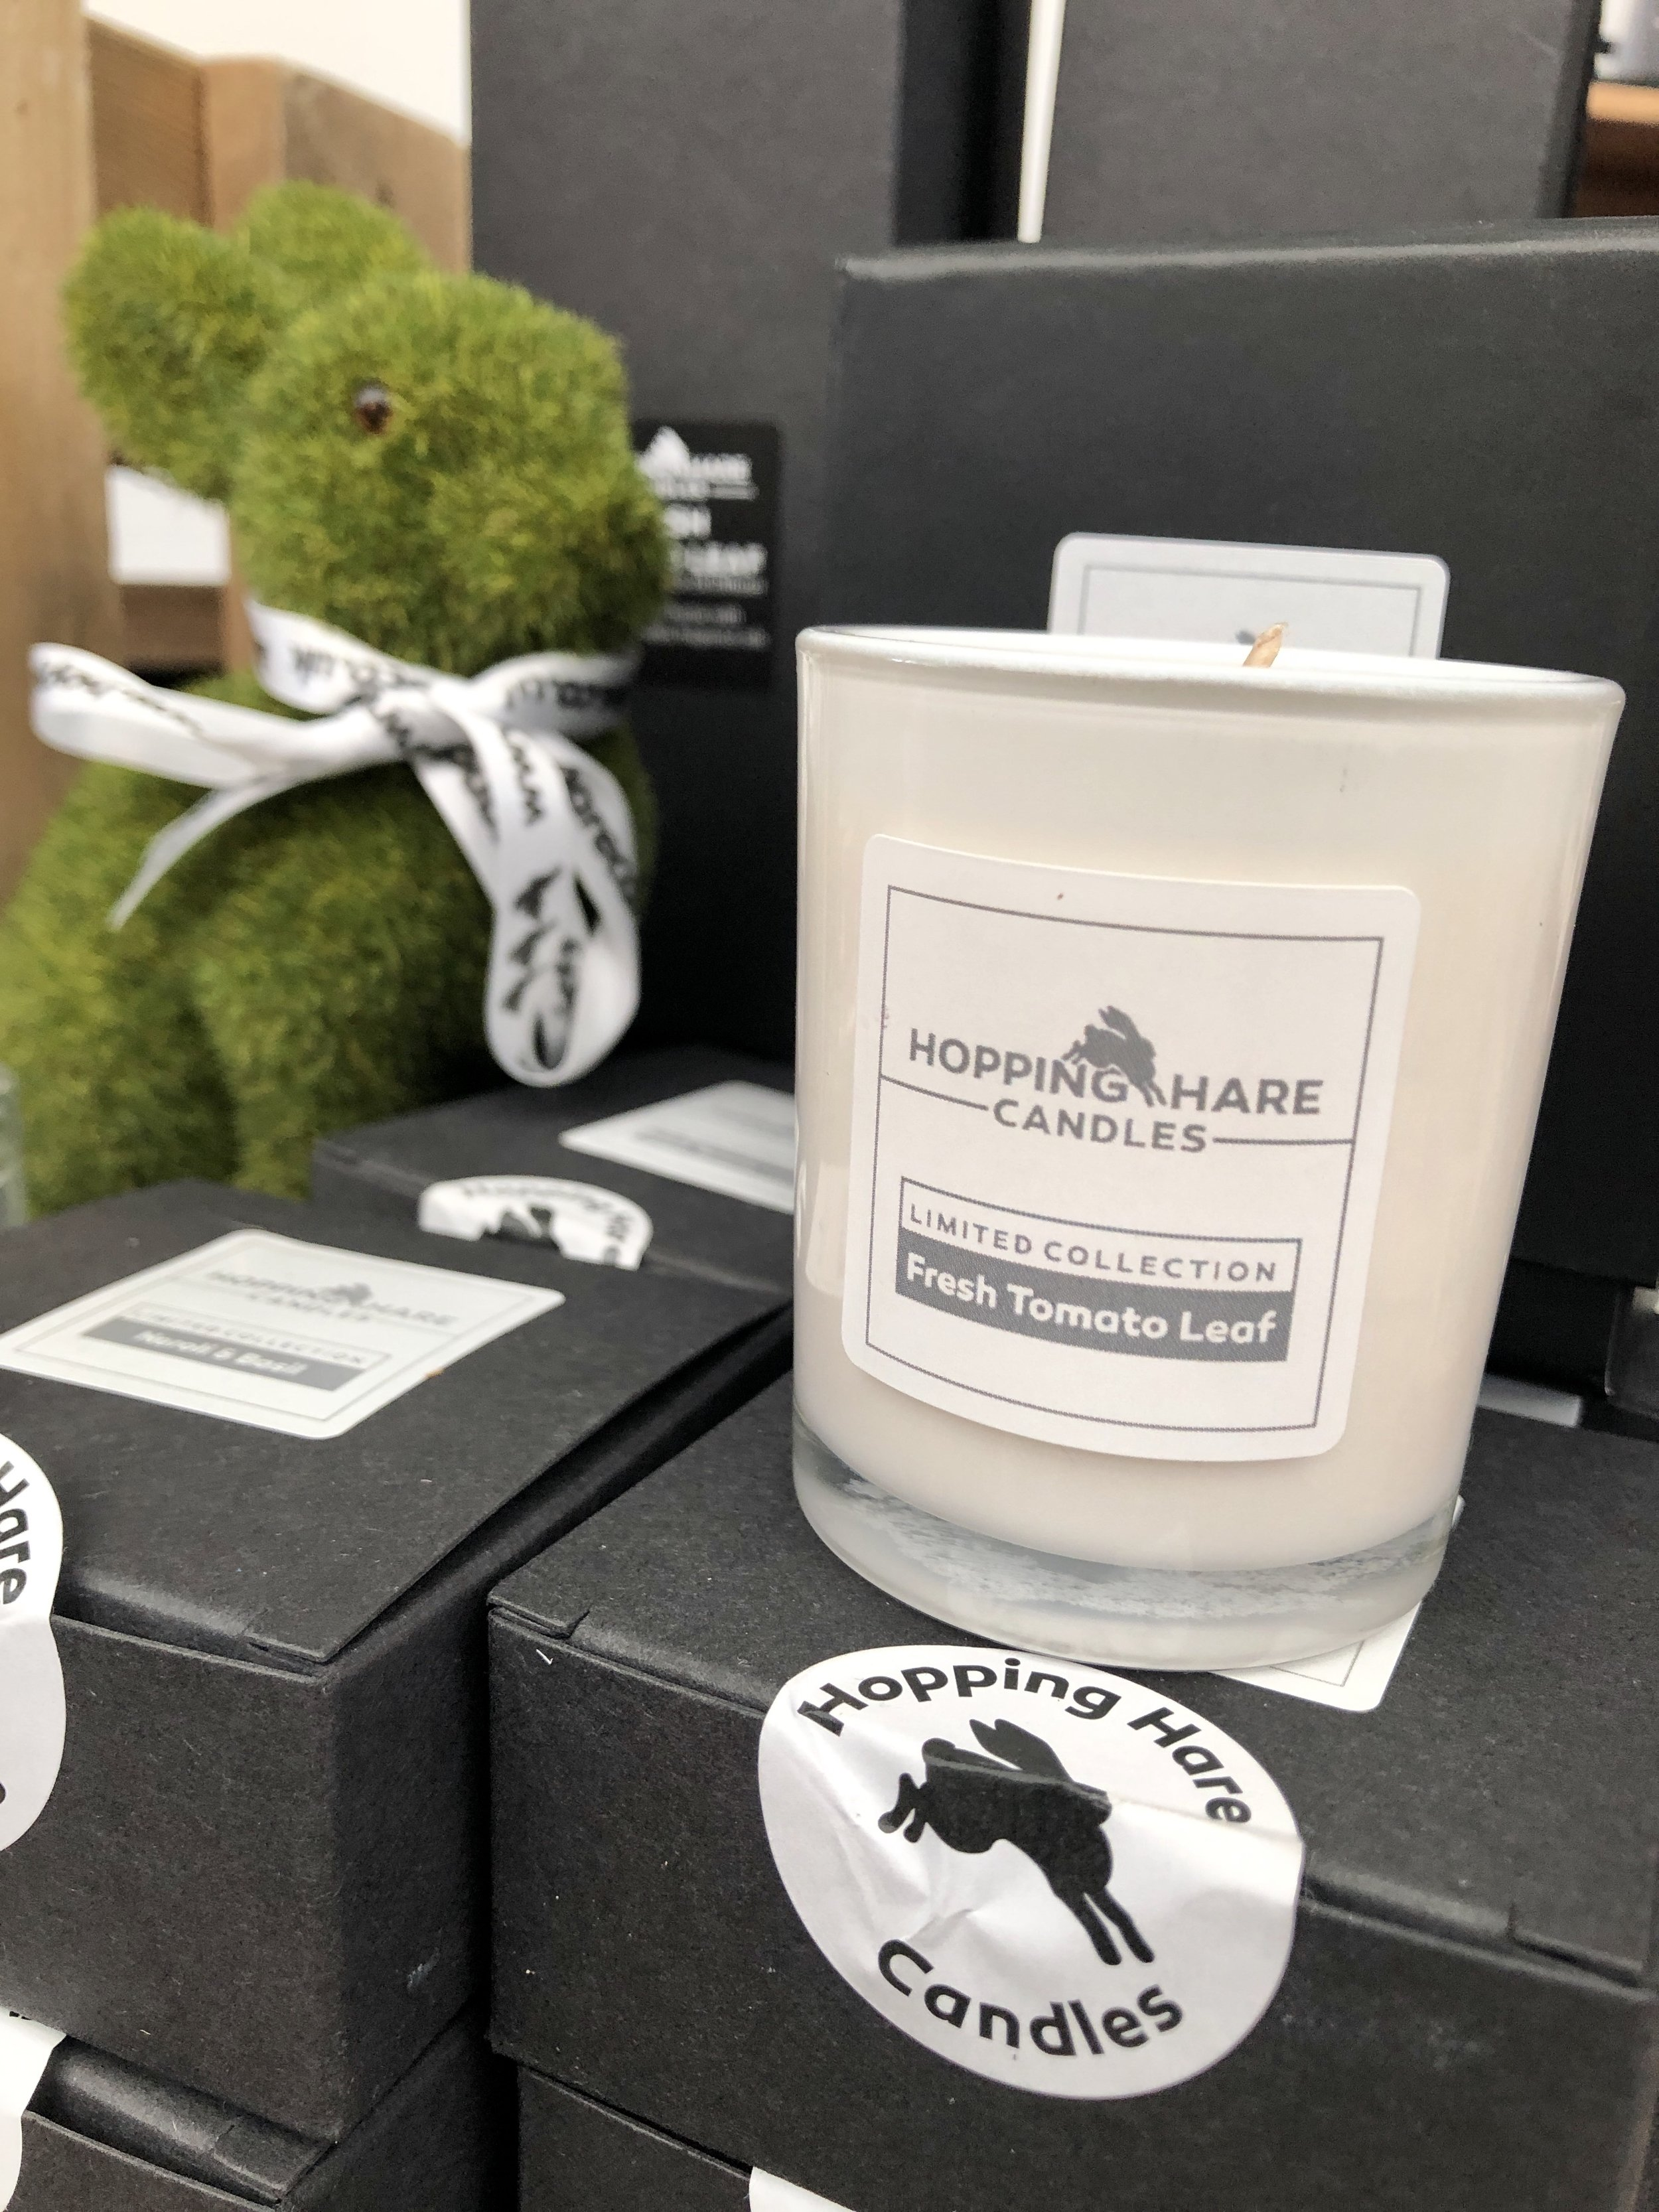 Hopping Hare Candles